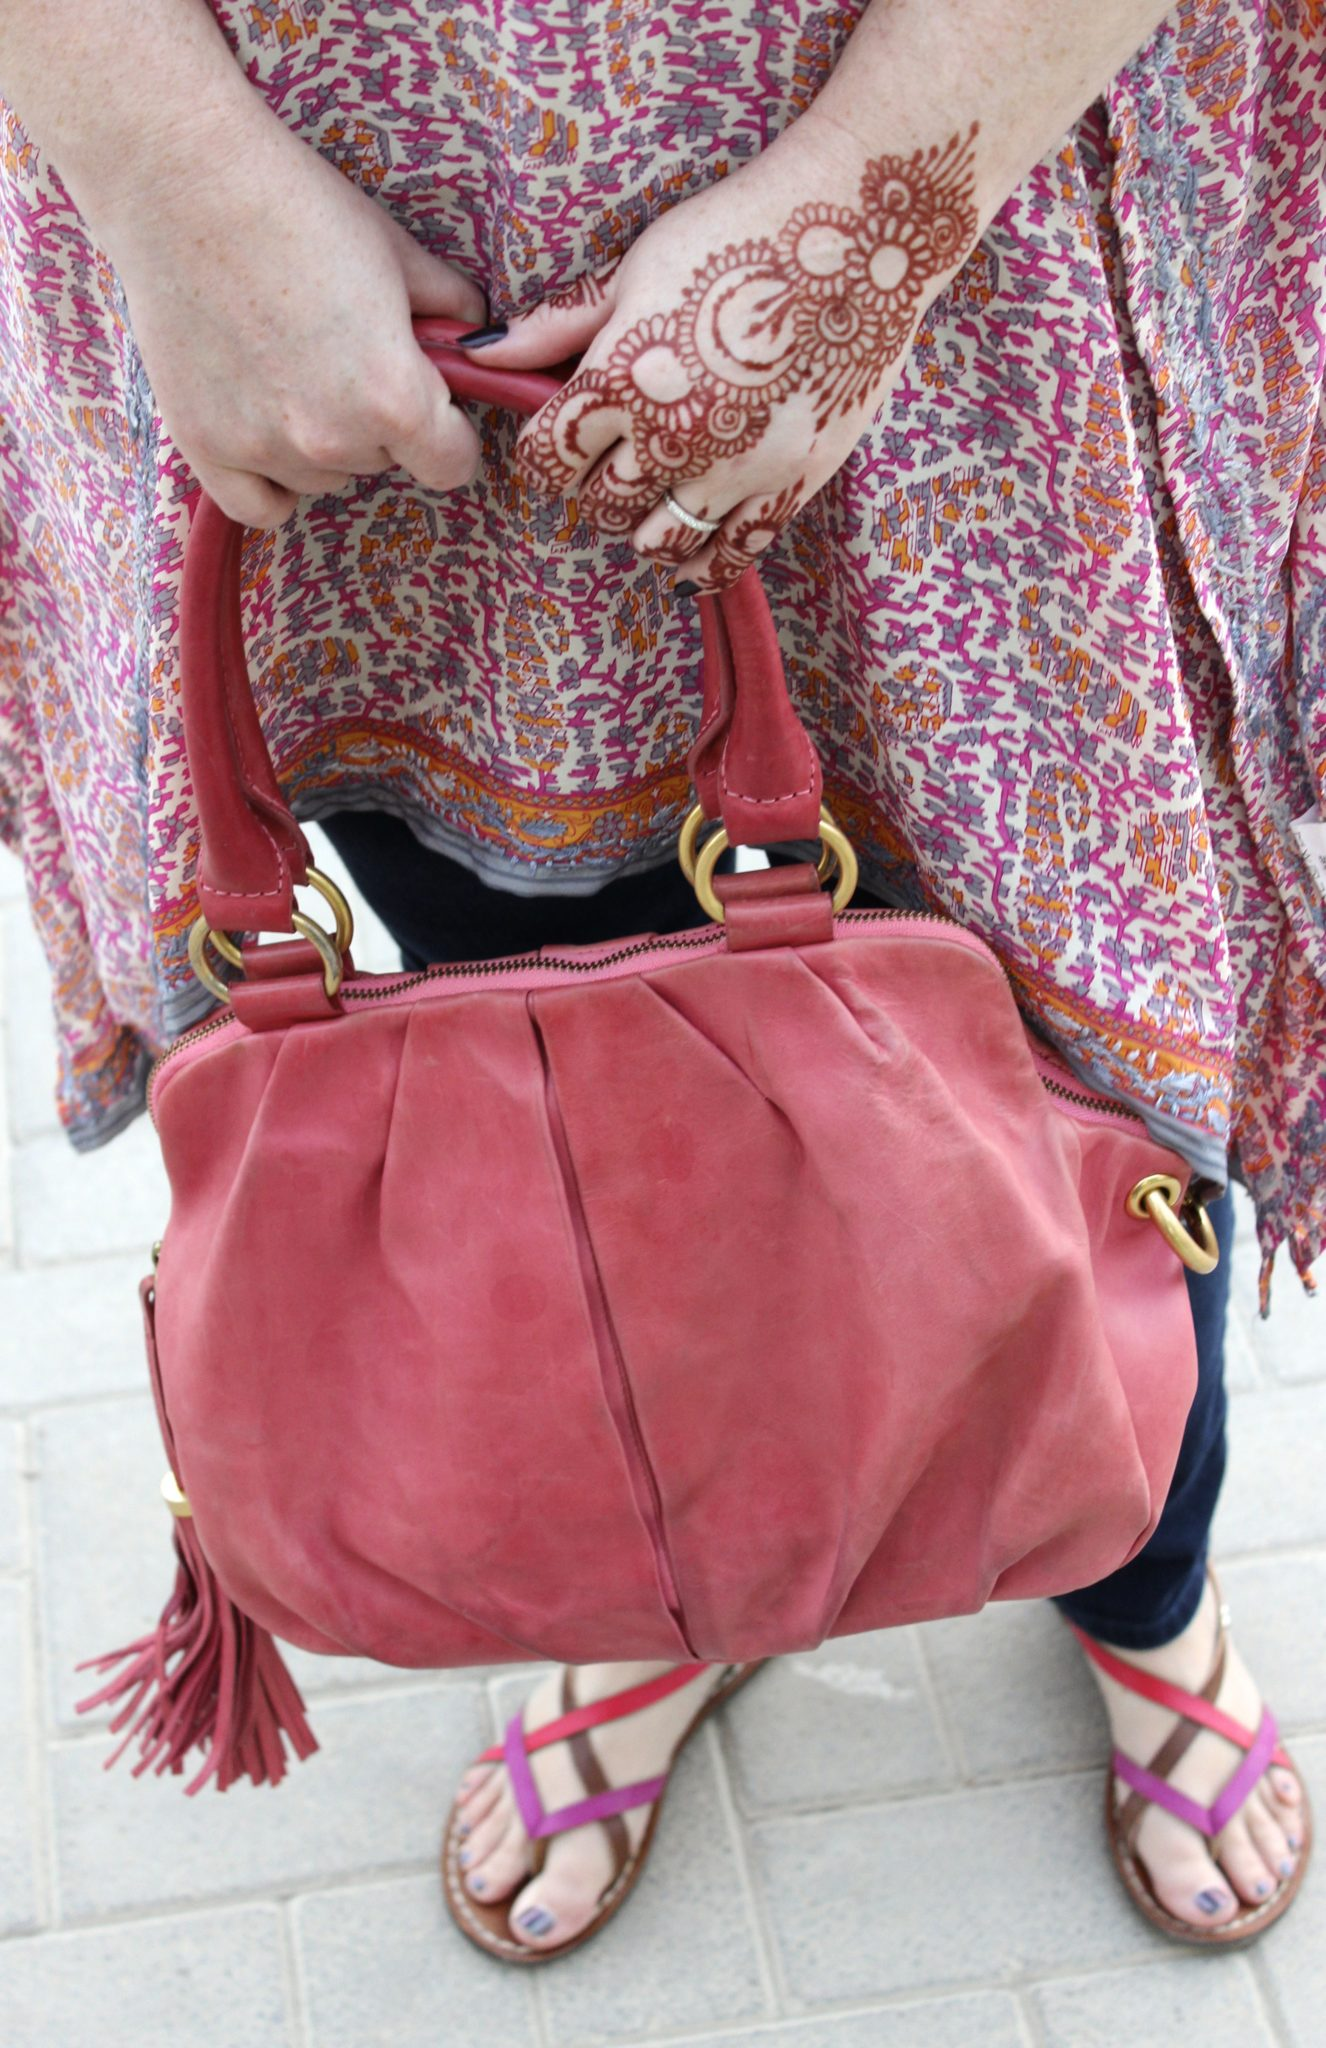 pink bag and tunic